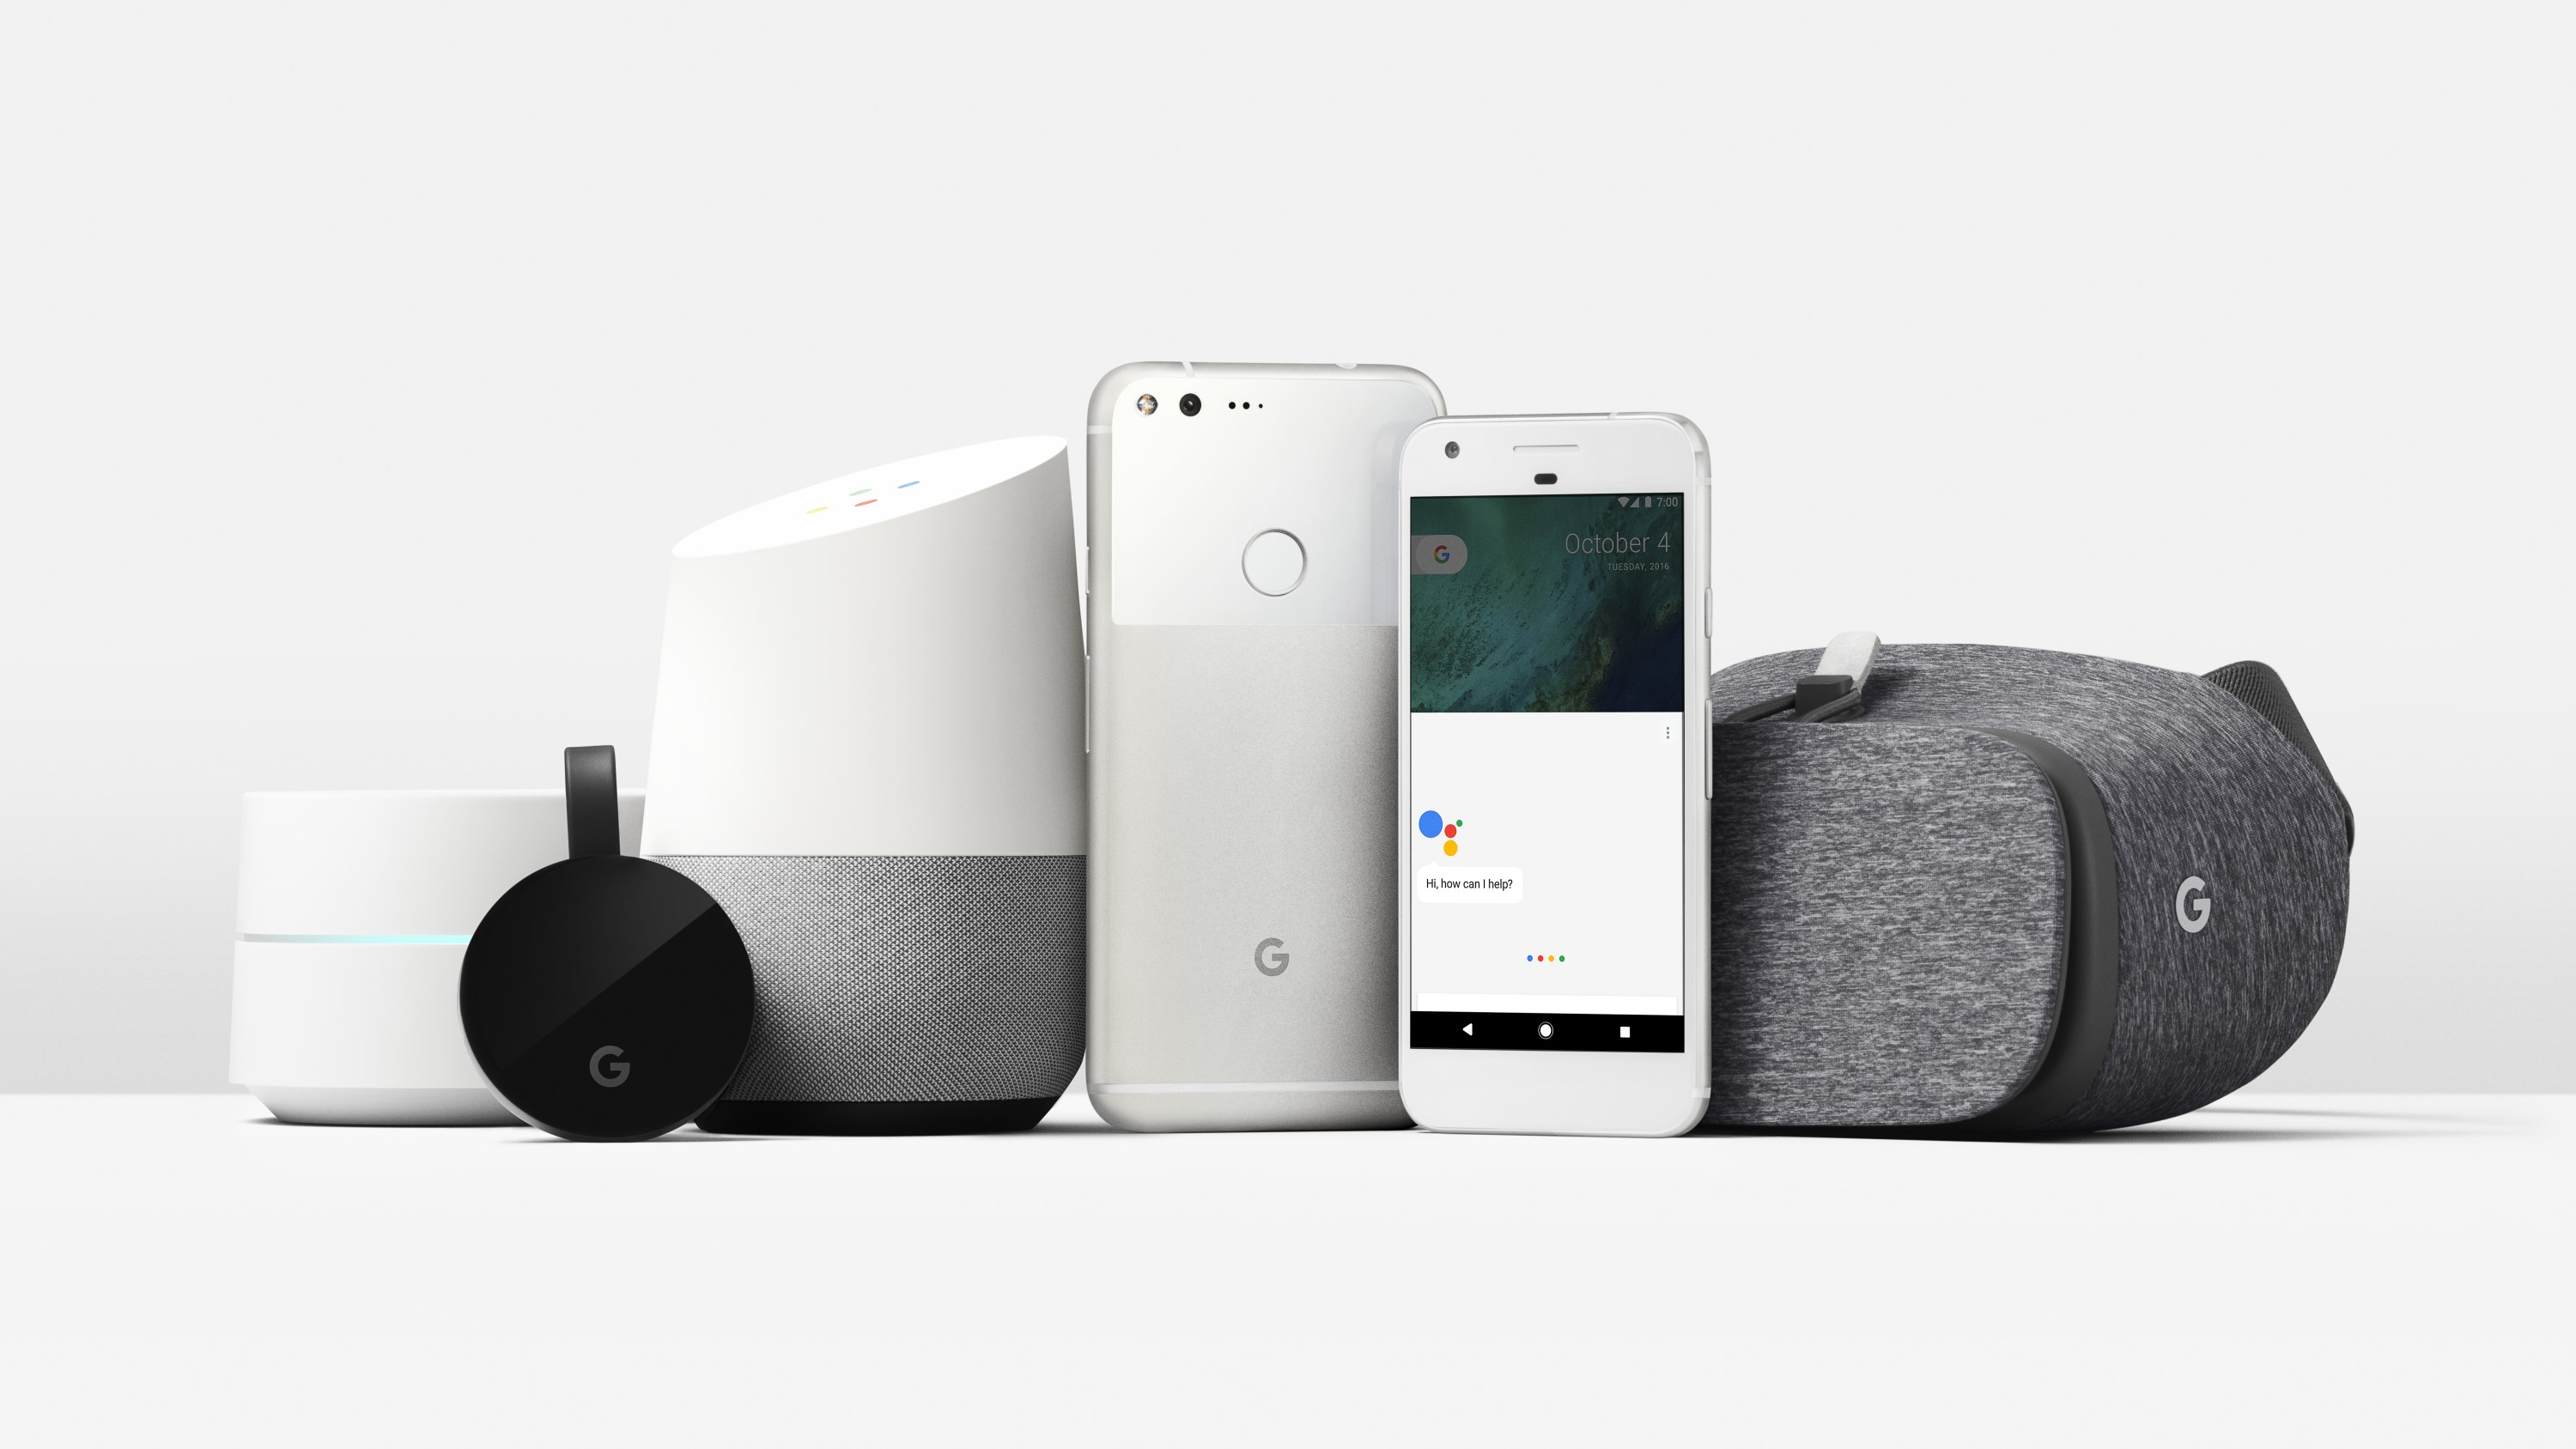 Google's new devices and services.